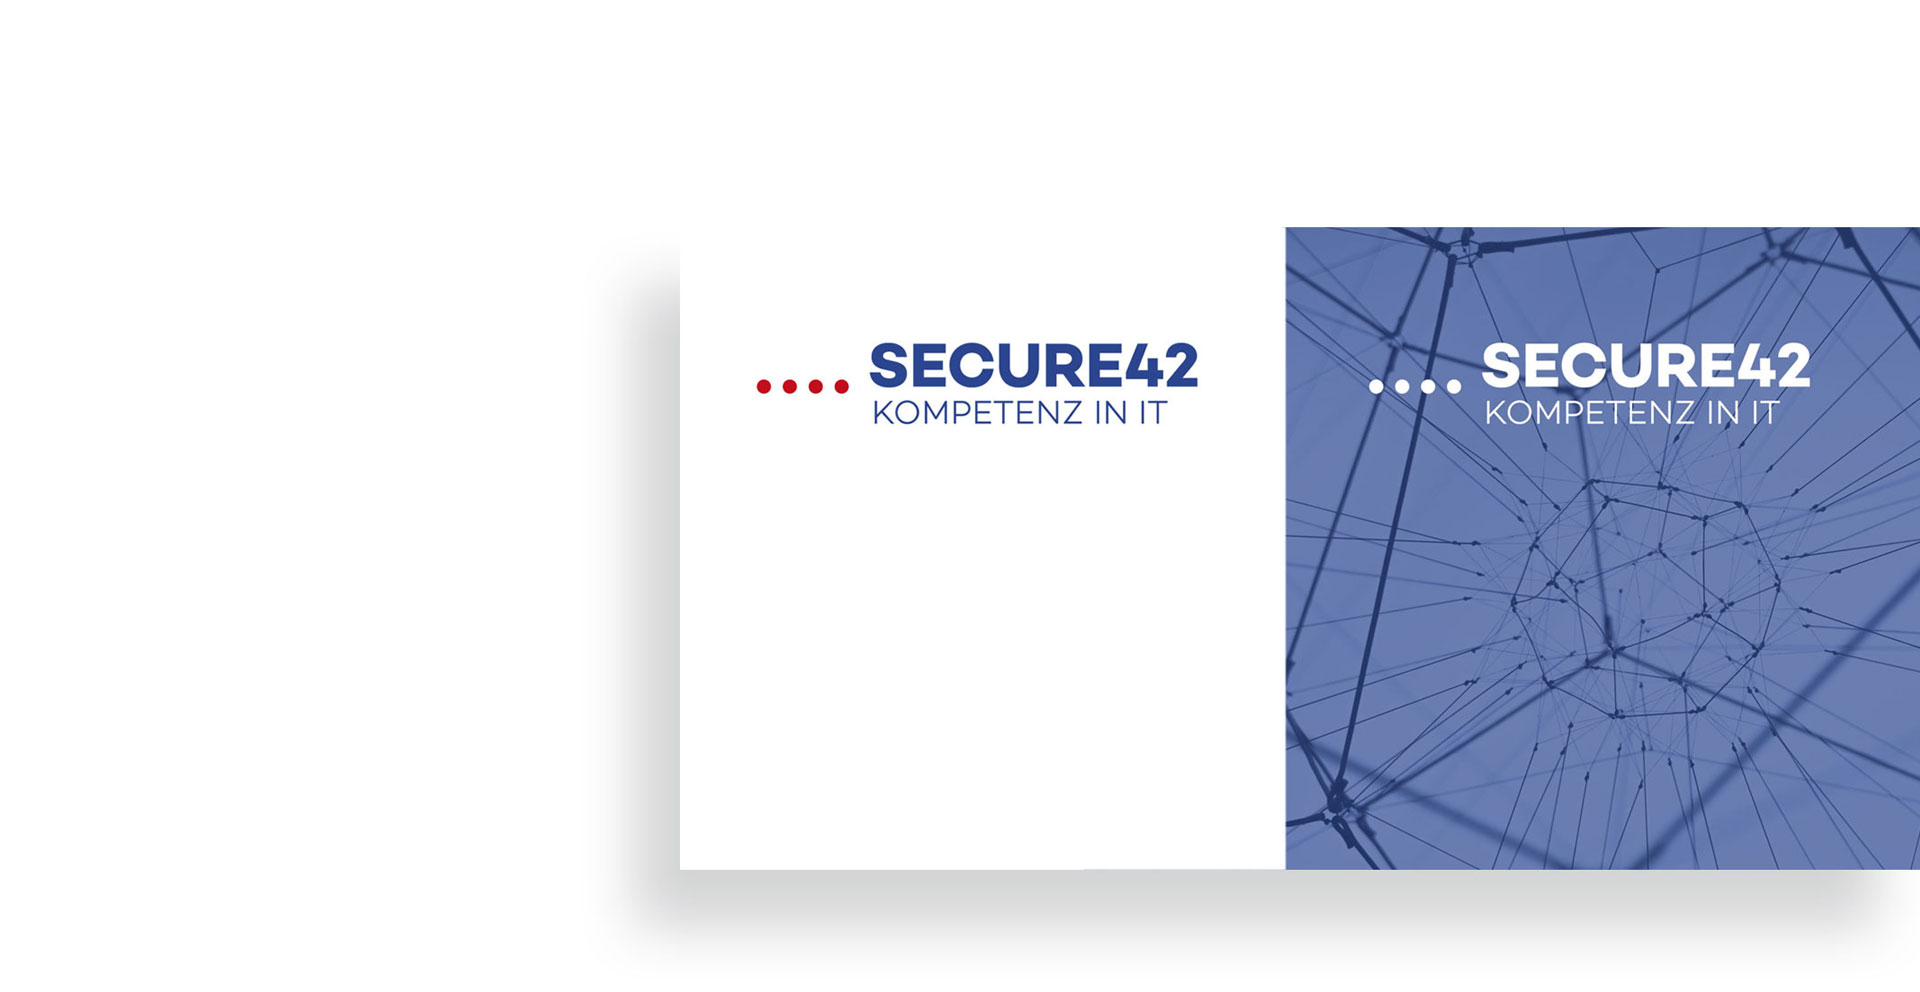 secure42